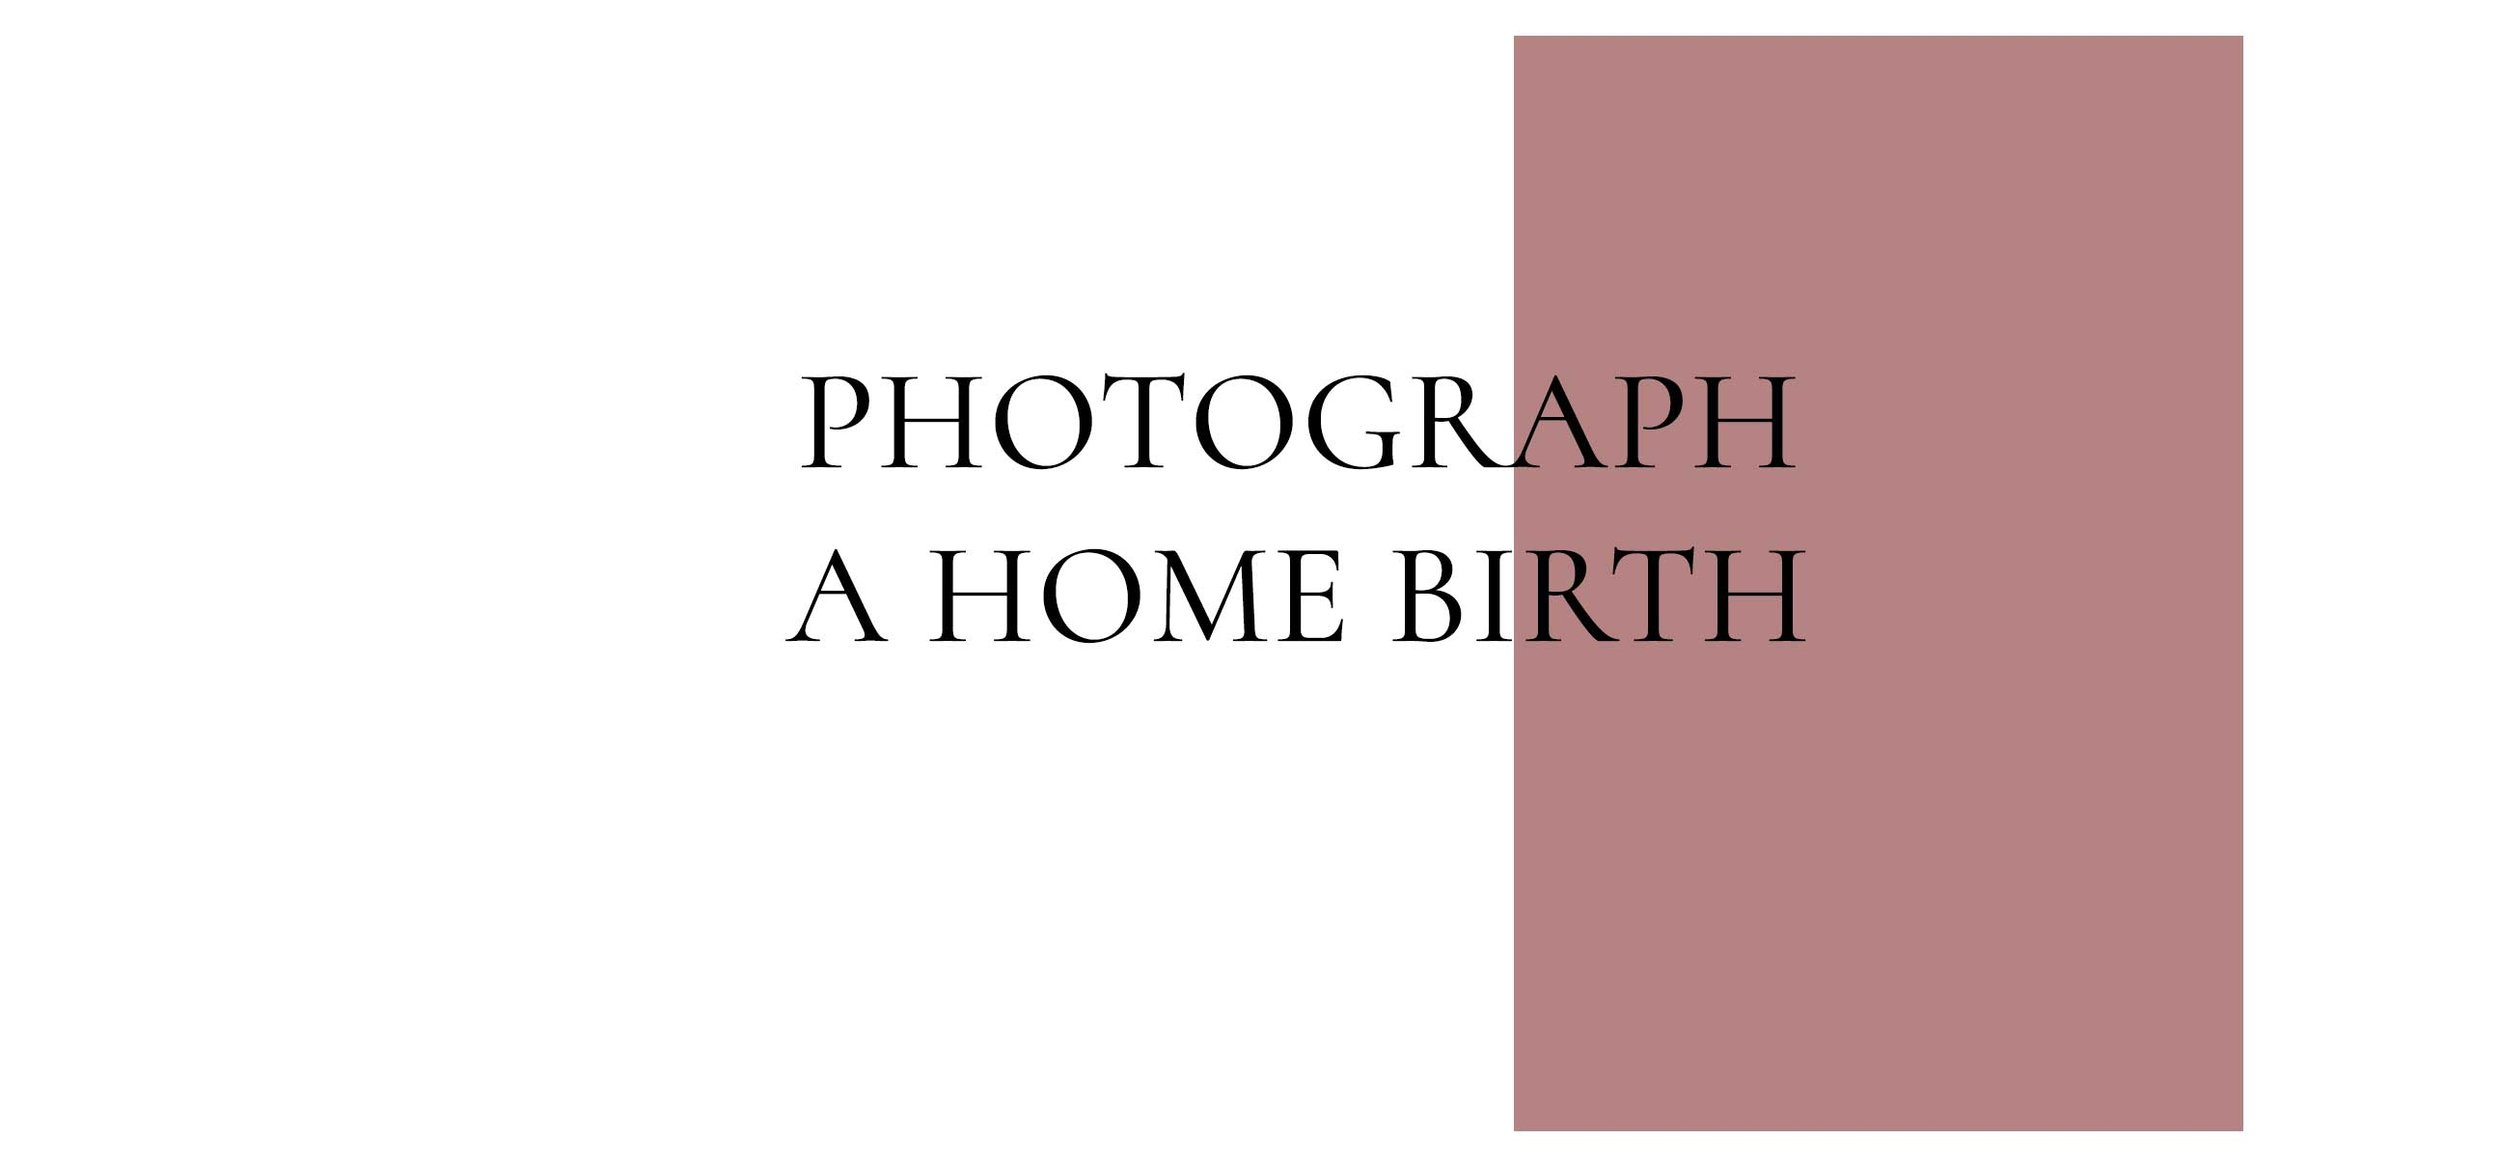 3-Photograph-Home-Birth.jpg